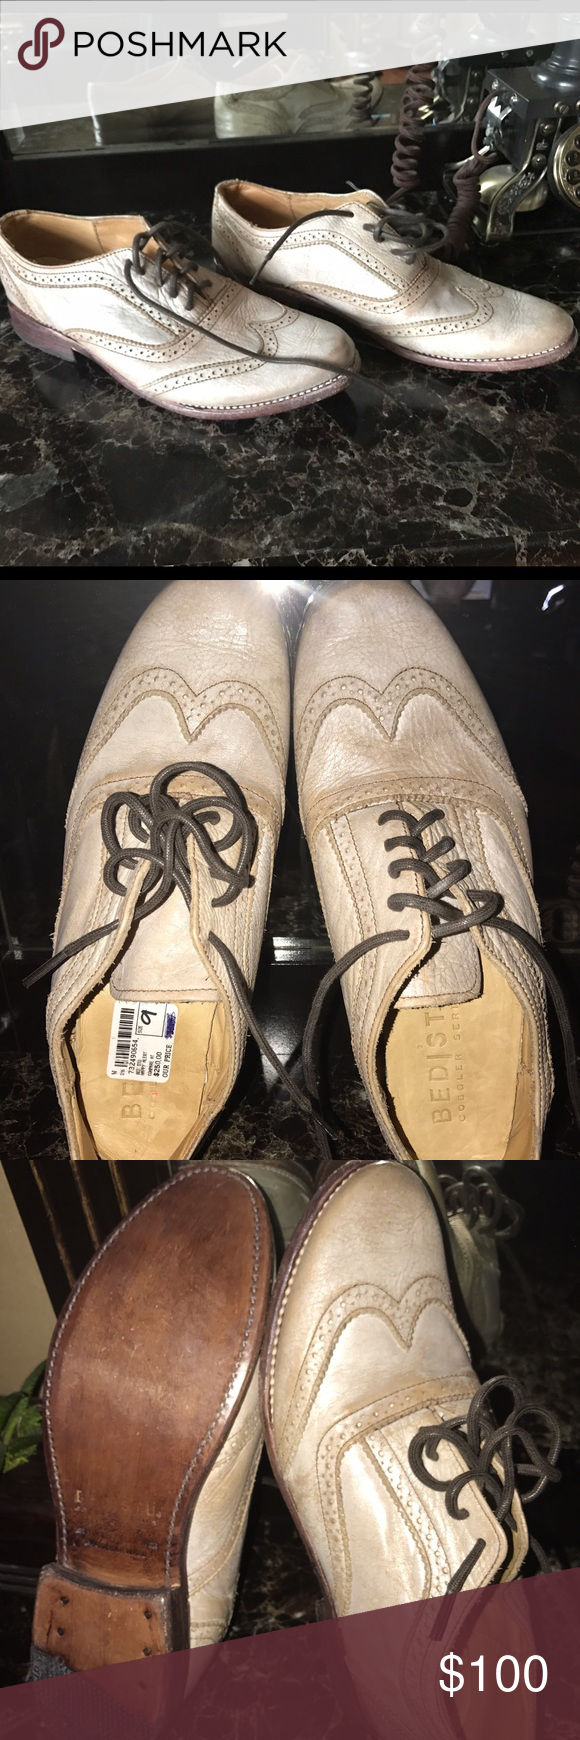 NEW Bed Stu Men's Oxford Distressed Shoes Brand NEW never worn; bought as a gift for my husband.  He wears size 8.5-9.  This pair is labeled size 9, BUT it runs really Small!!!  I think best fit would be size 7.5-8.  Im listing it as size 8.  This is ABSOLUTELY Awesome Stylish pair of shoes!  HAND MAID, the BEST quality shoes!  My loss is your gain! Bed Stu Shoes